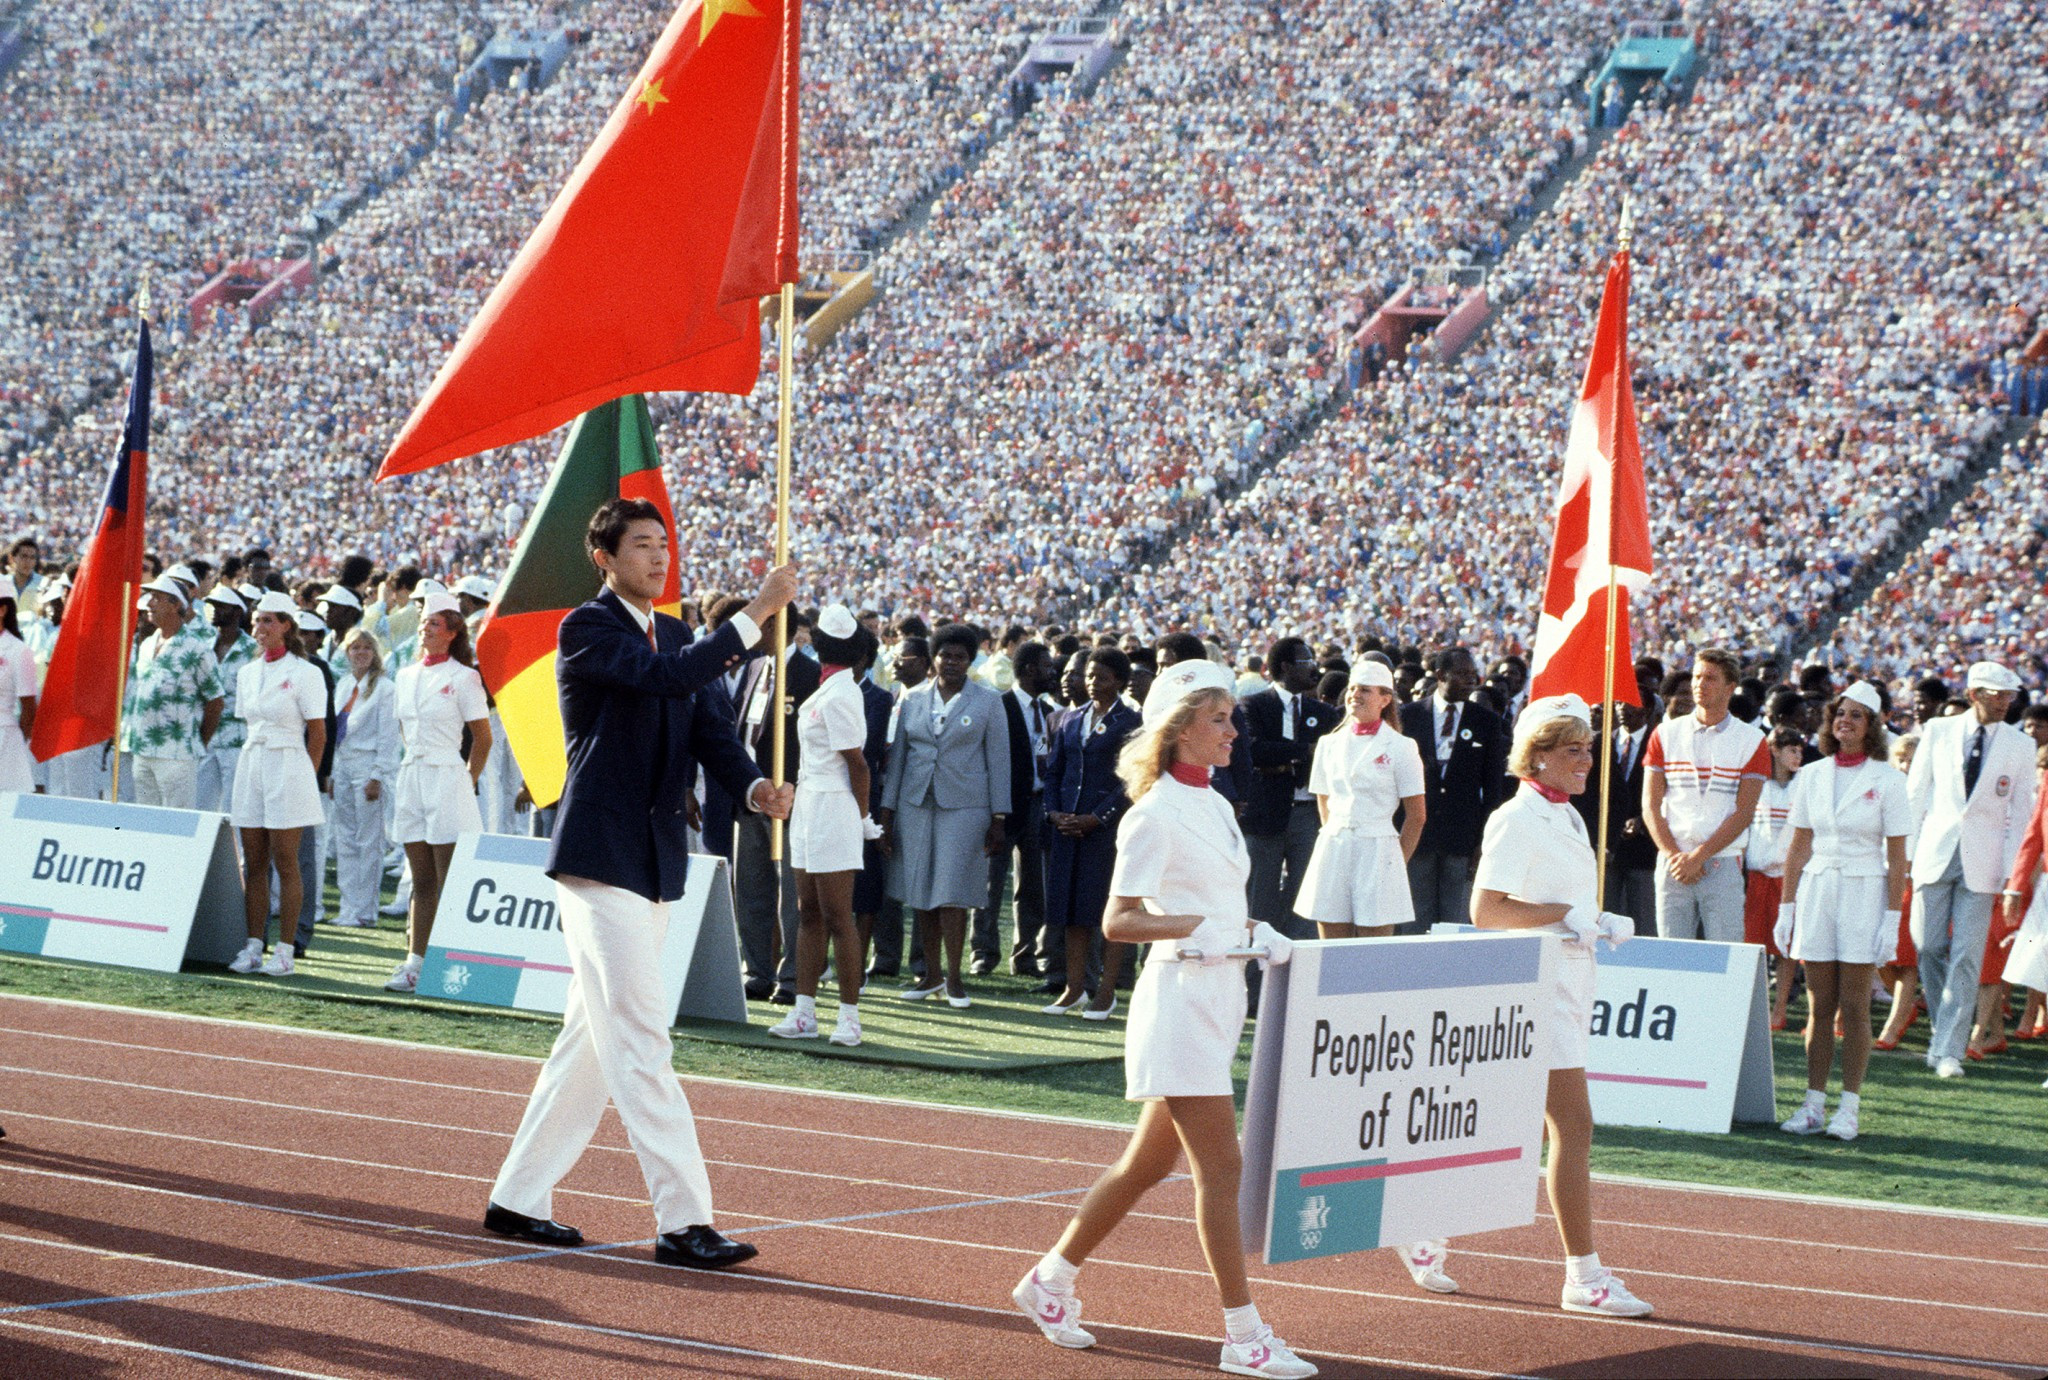 A deal cut at the IOC Session in Montevideo in 1979 paved for China to finally return to the Olympic Games after a 32-year absence at Los Angeles in 1984 ©Getty Images